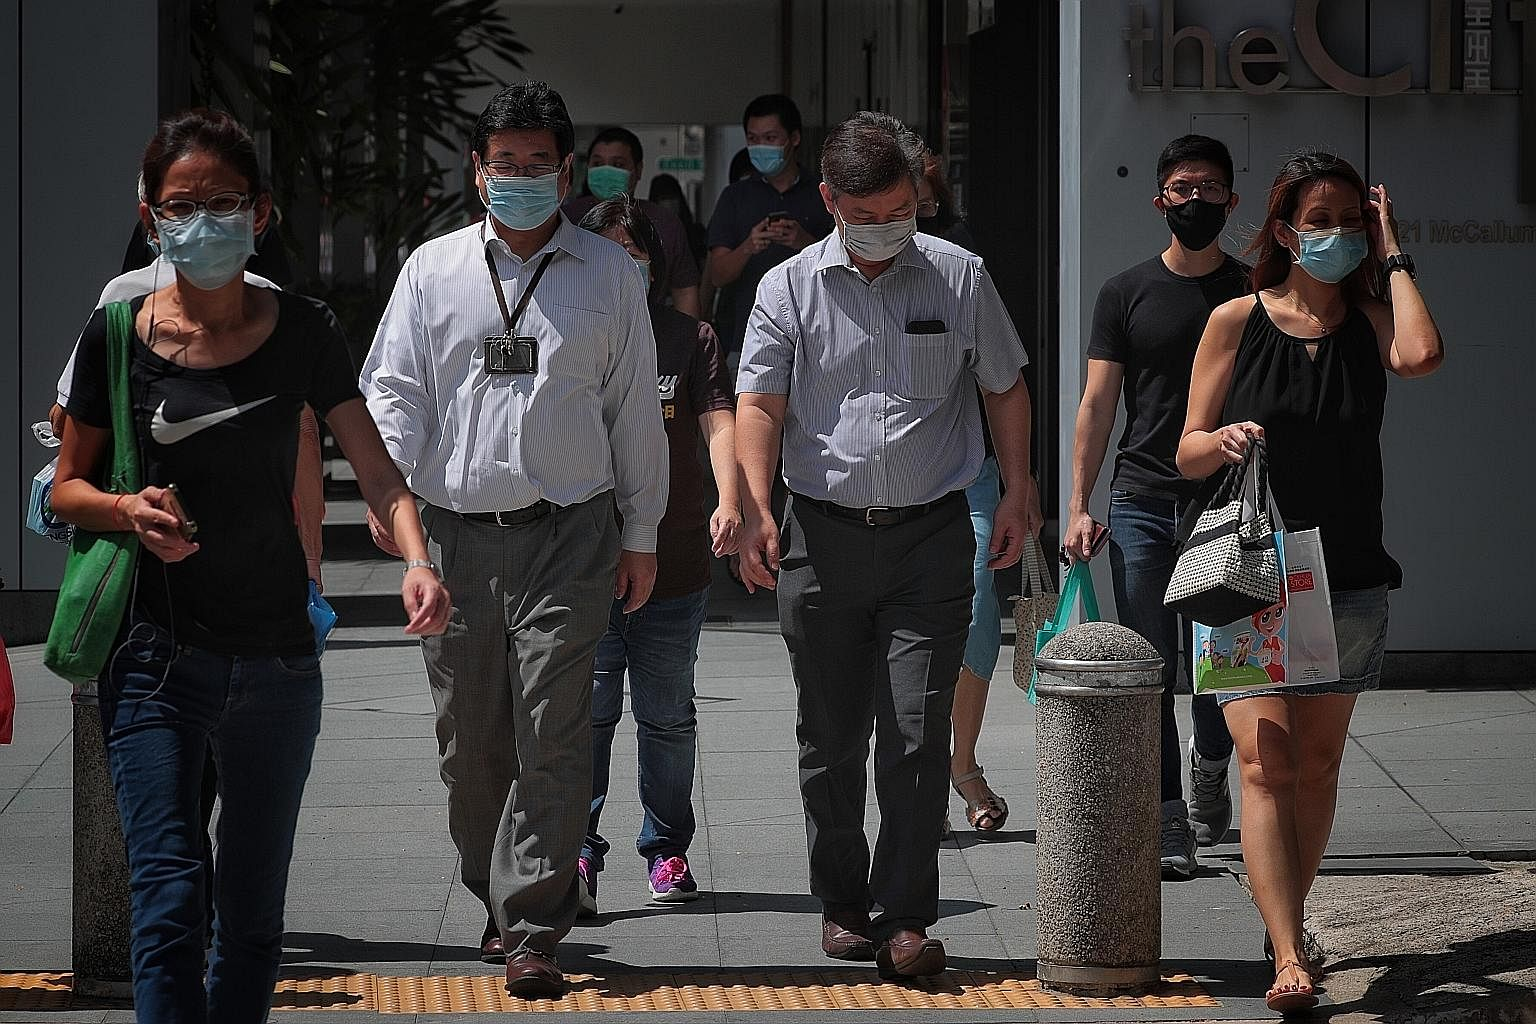 Office workers at Maxwell Food Centre during lunchtime. Office workers in Telok Ayer Street during lunchtime yesterday. According to the Manpower Ministry's guid